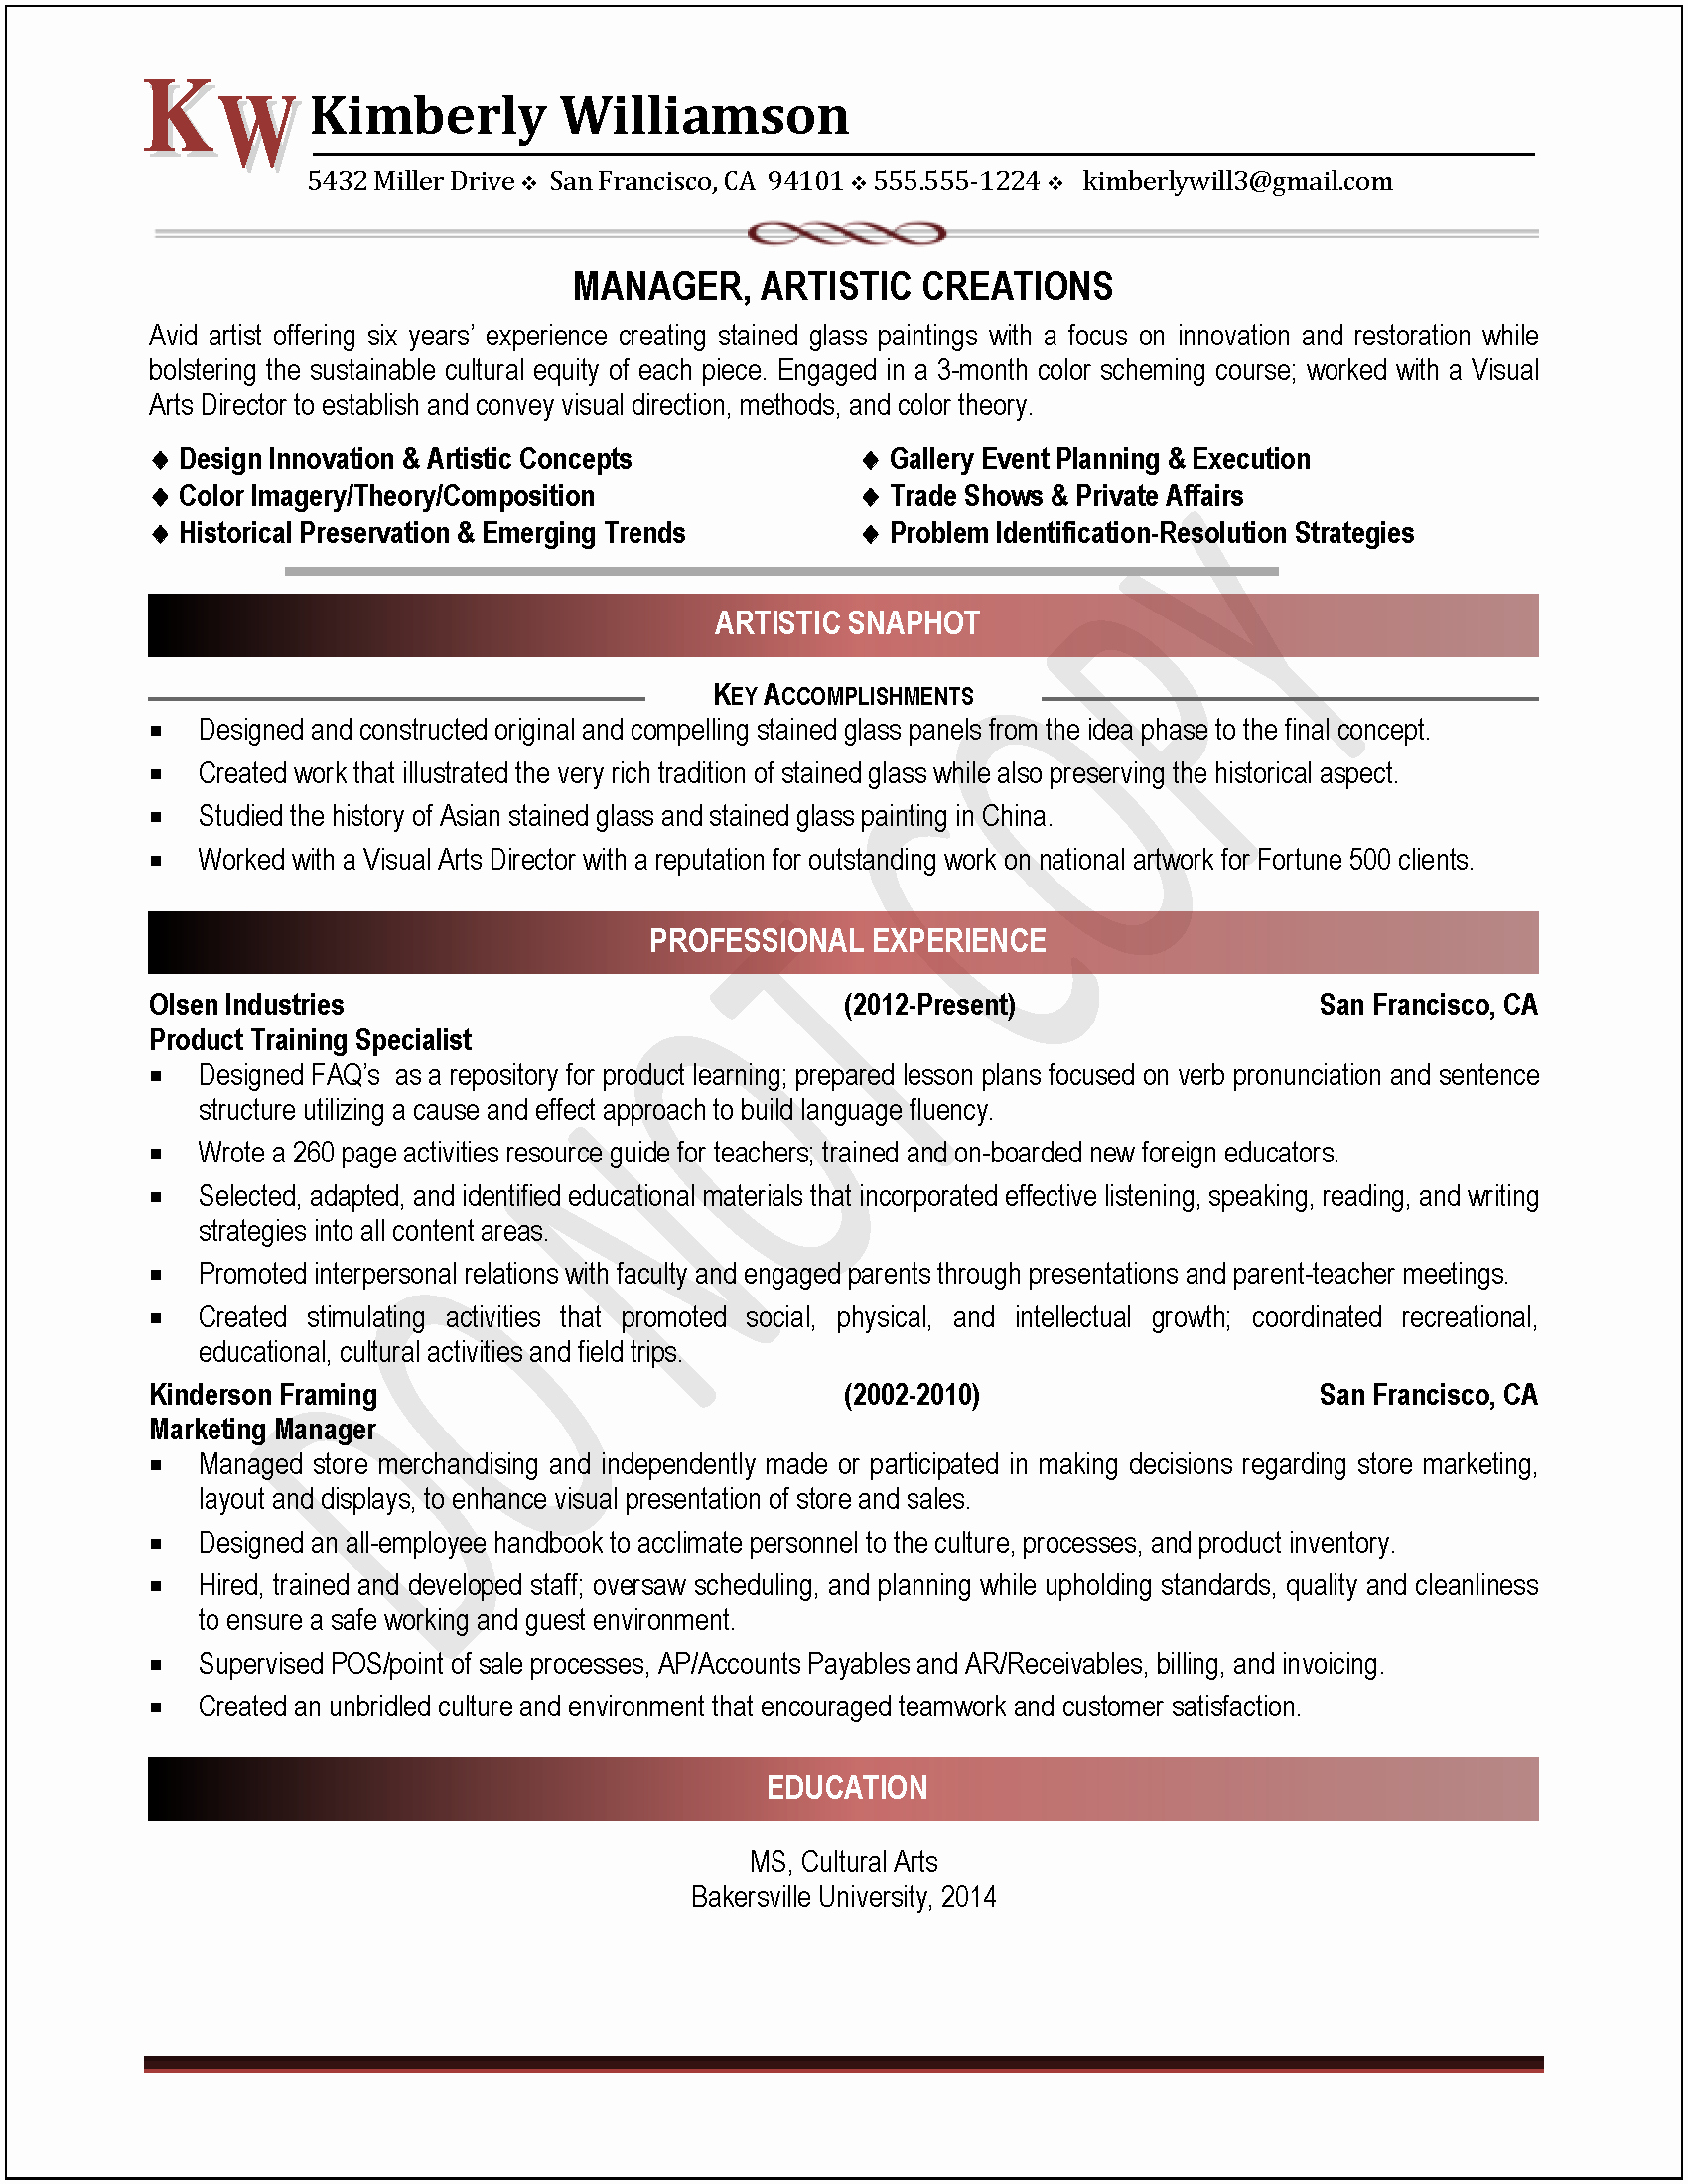 Exles Of Professional Resumes Search Results for